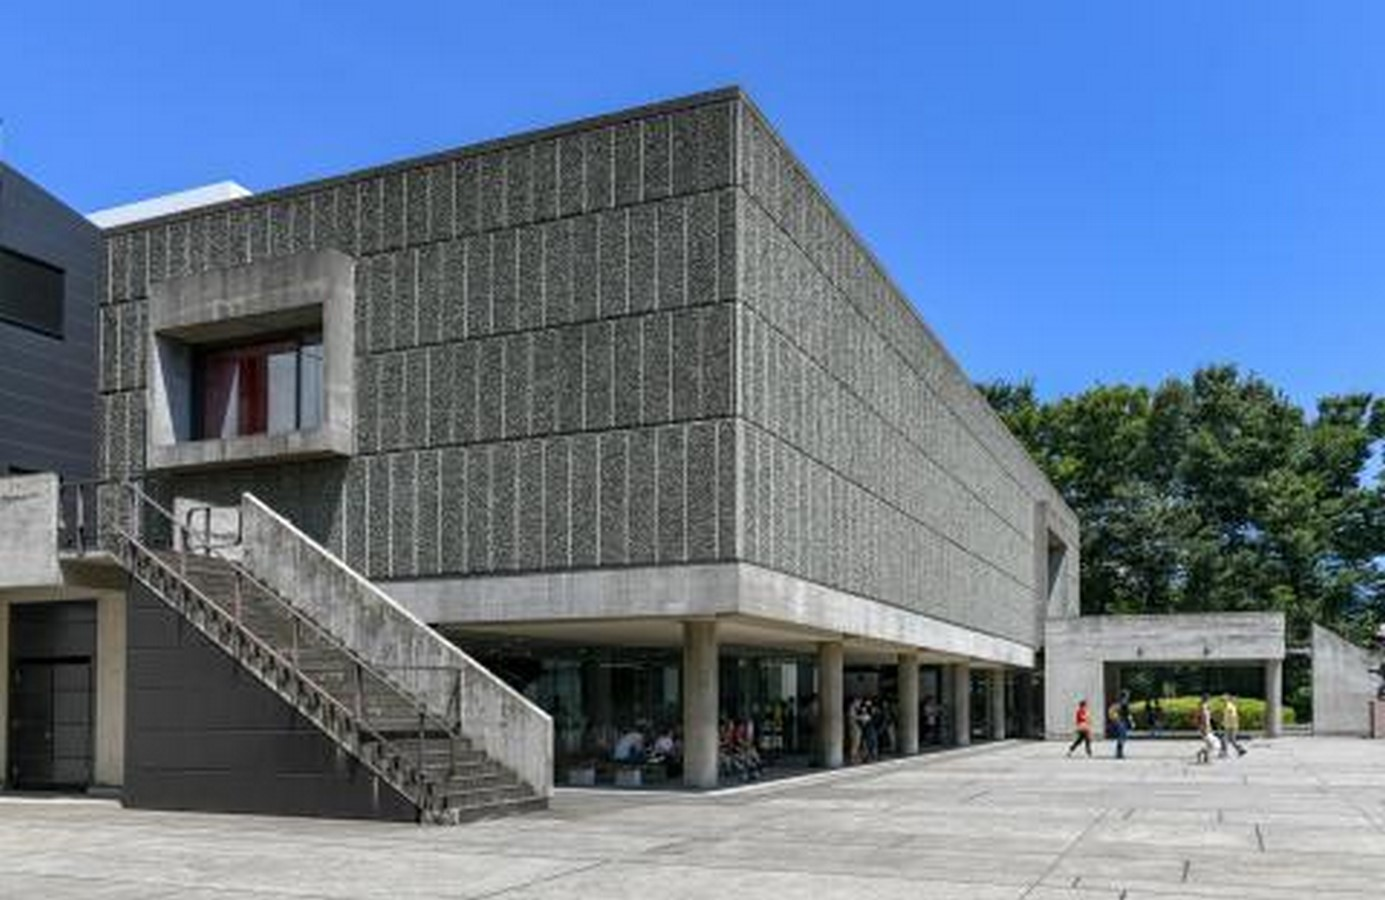 Architecture of Japan: Is it really Sustainable? - Sheet3